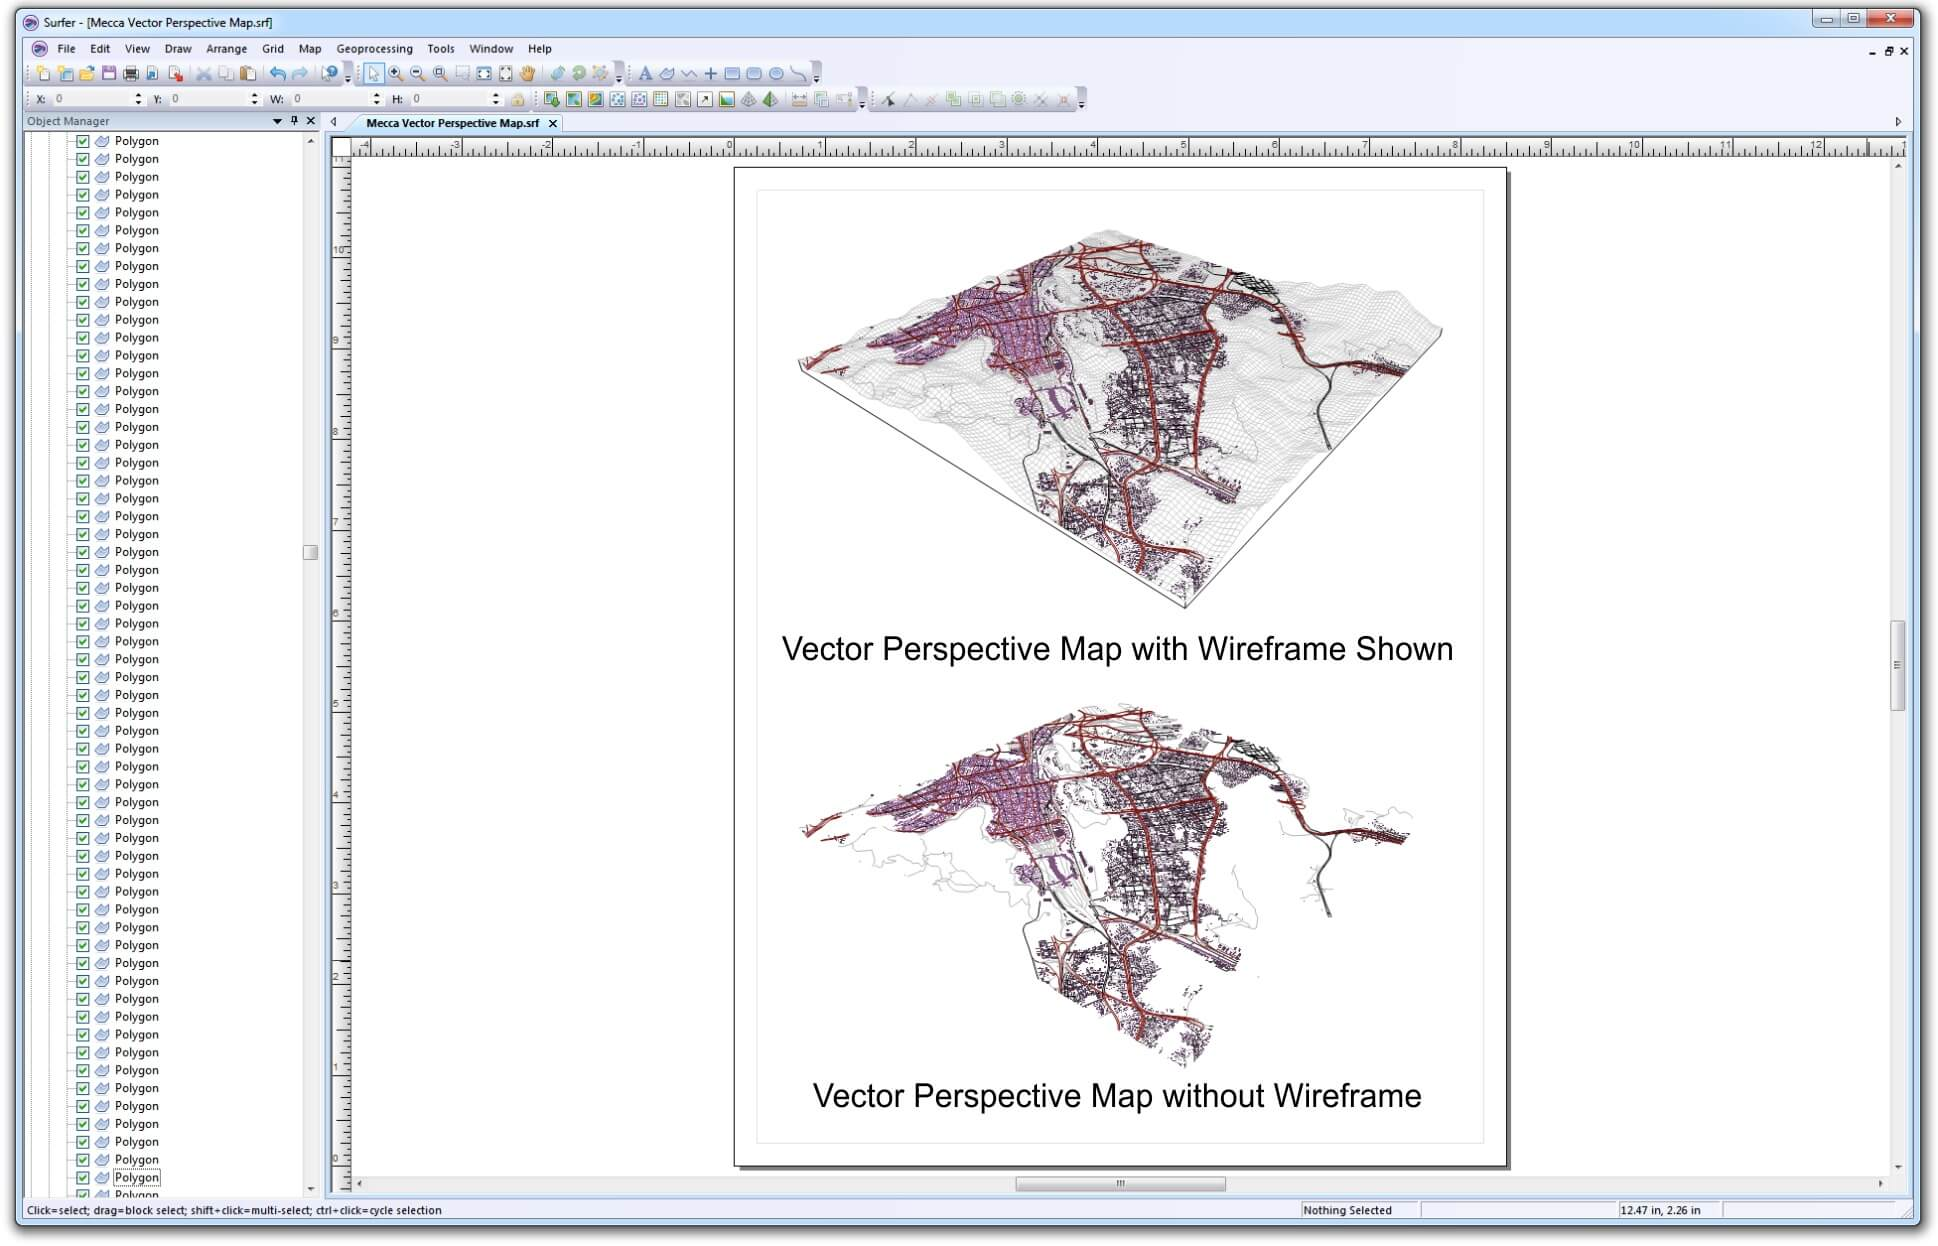 Surfer mapping software - 3D wireframe map created from DEM data with overlain vector .shp files